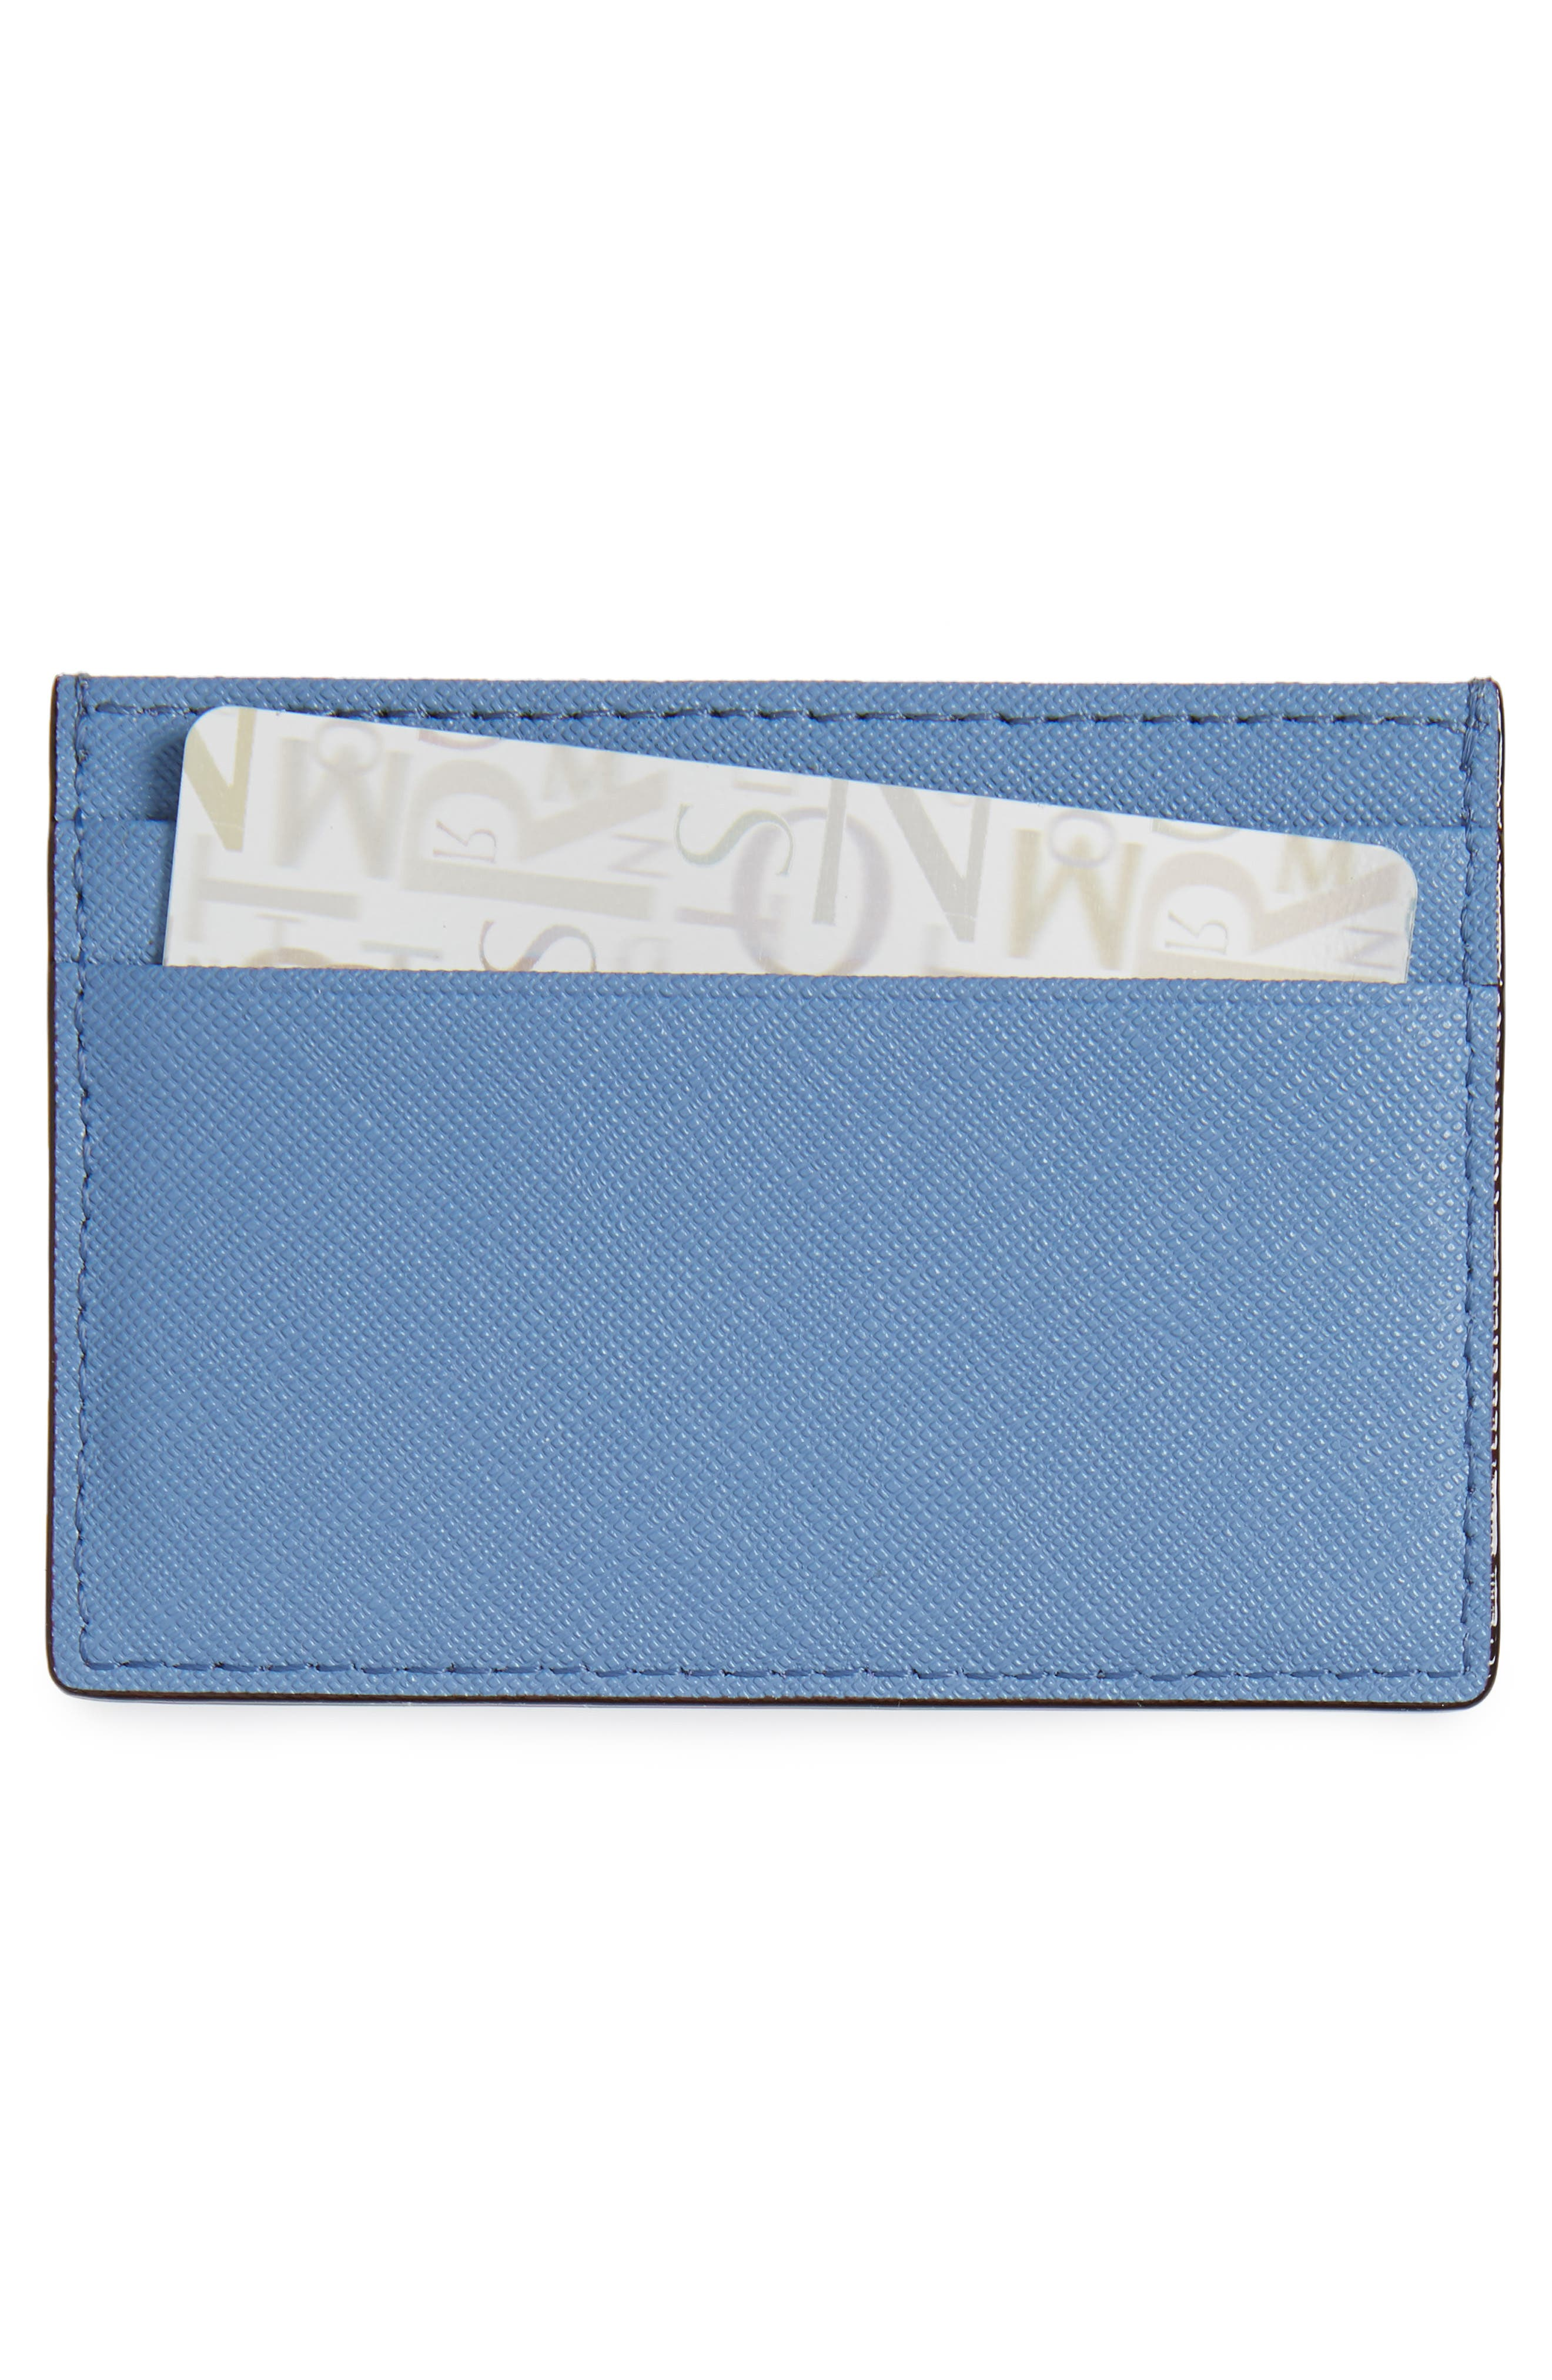 cameron street card holder,                             Alternate thumbnail 20, color,